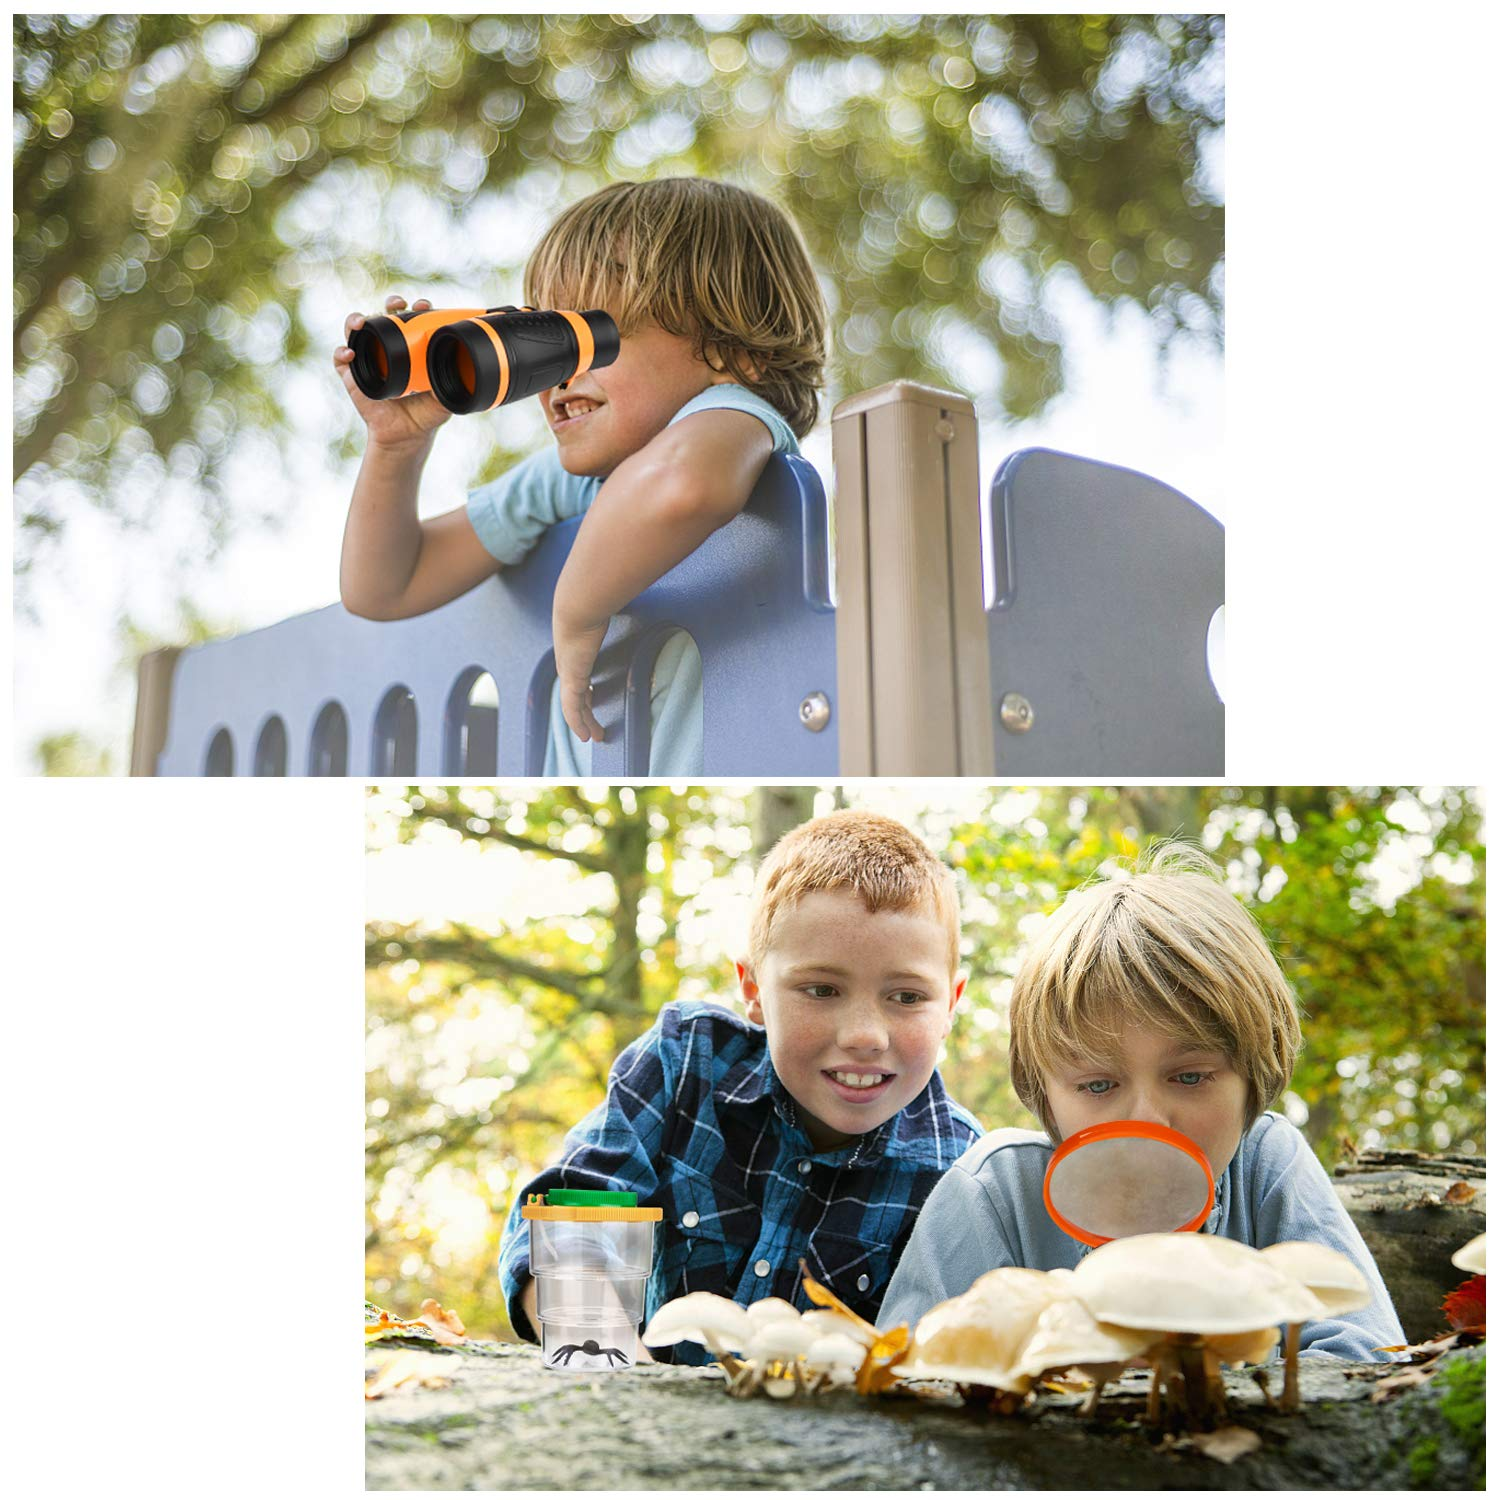 Kids Binoculars Toy Set, Outdoor Exploration Set, Best for 3 4 5 6-12 Year Old Boy and Girl, Kids Adventure Kit, Children Outdoor Educational Kit